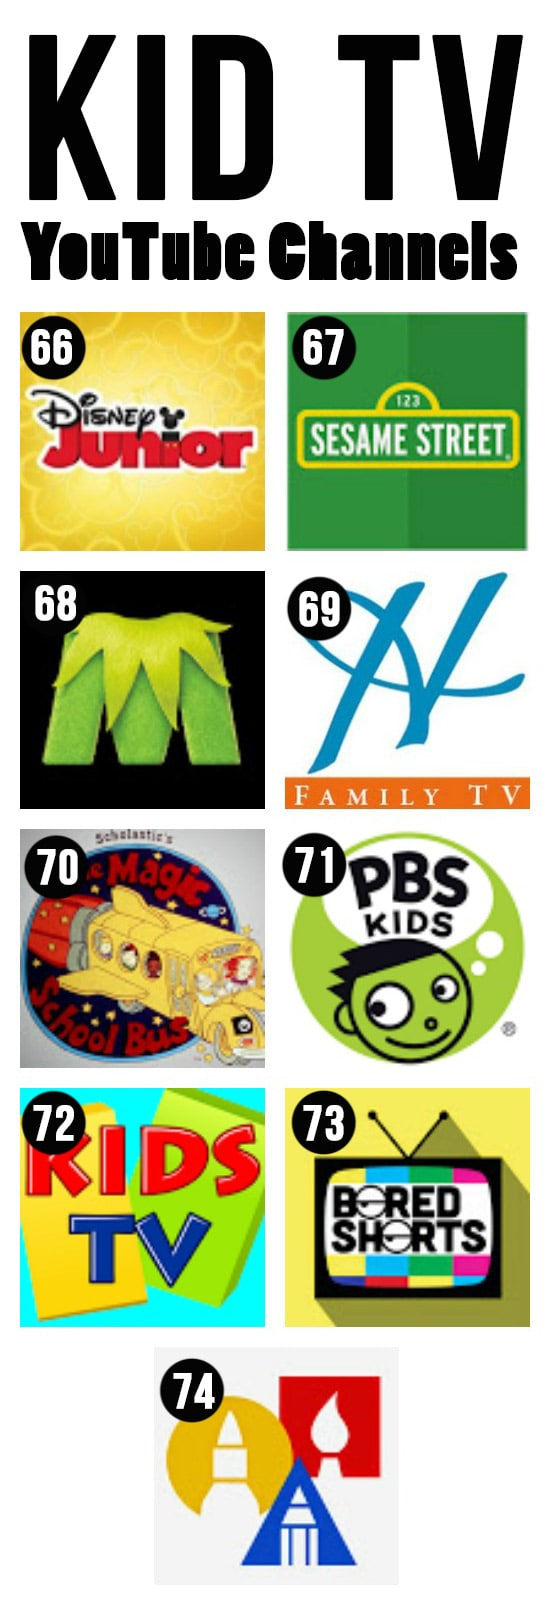 Kid TV YouTube Channels